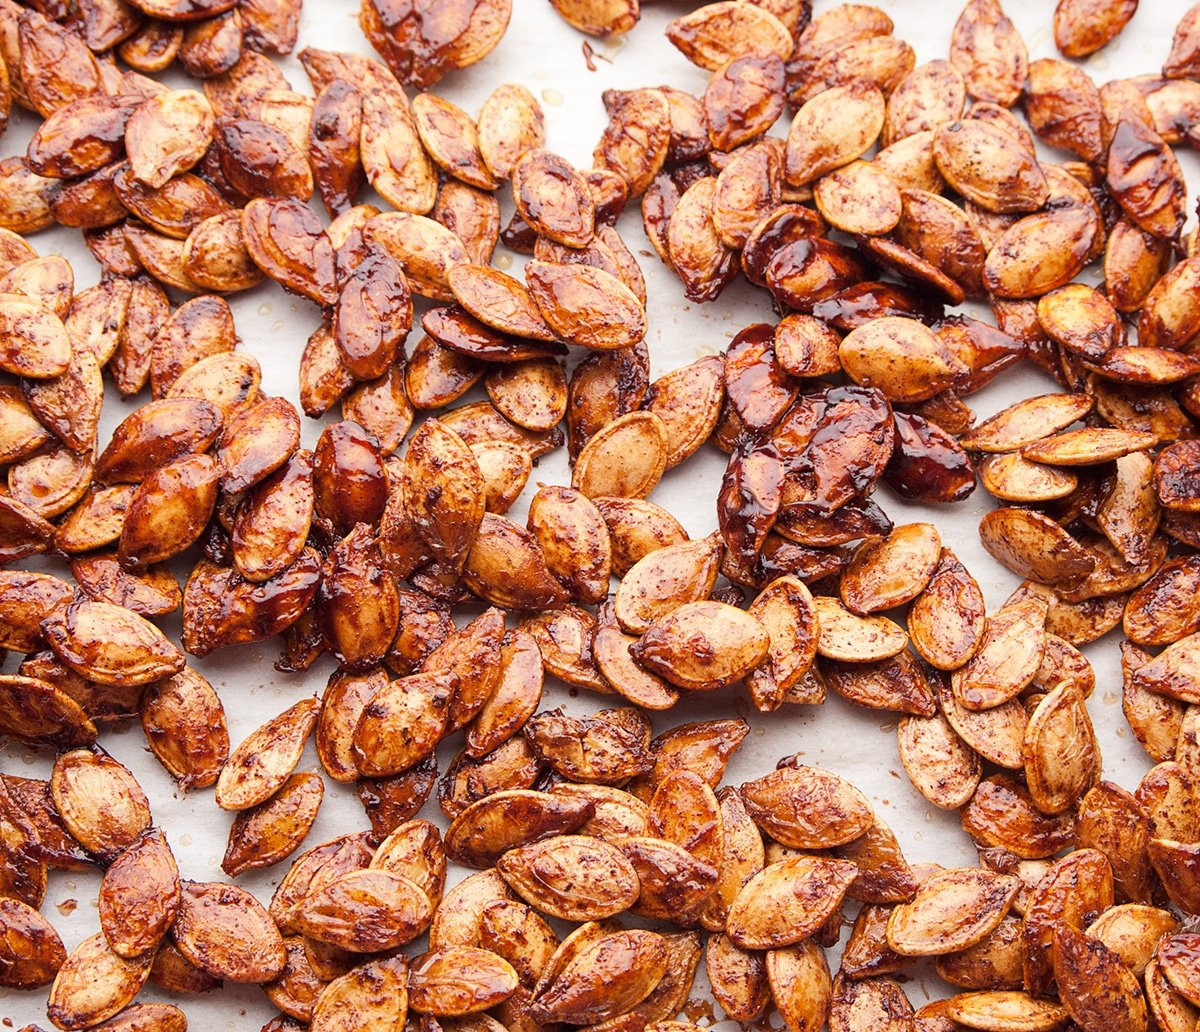 A parchment lined baking sheet is covered with roasted pumpkin seeds that were coated in maple syrup and spices- a delicious way to use up the leftover seeds from pumpkin carving. High point of view- looking down.